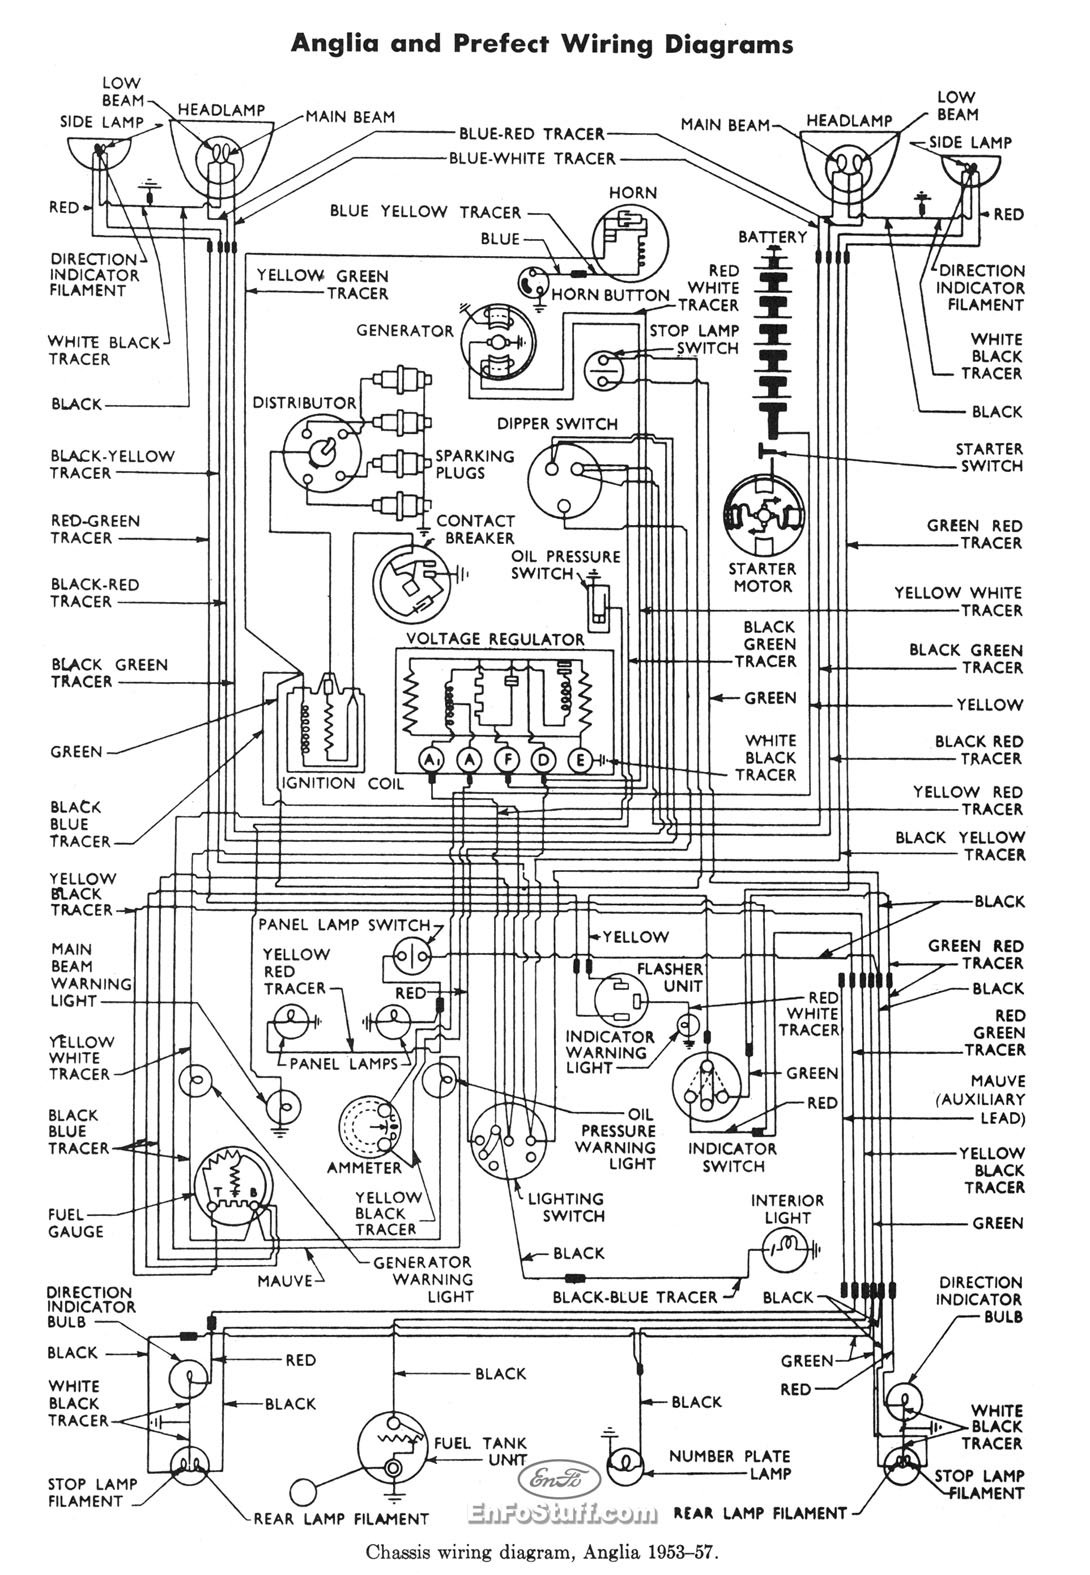 Ford F800 Wiring Schematic on harley ignition switch wiring diagram